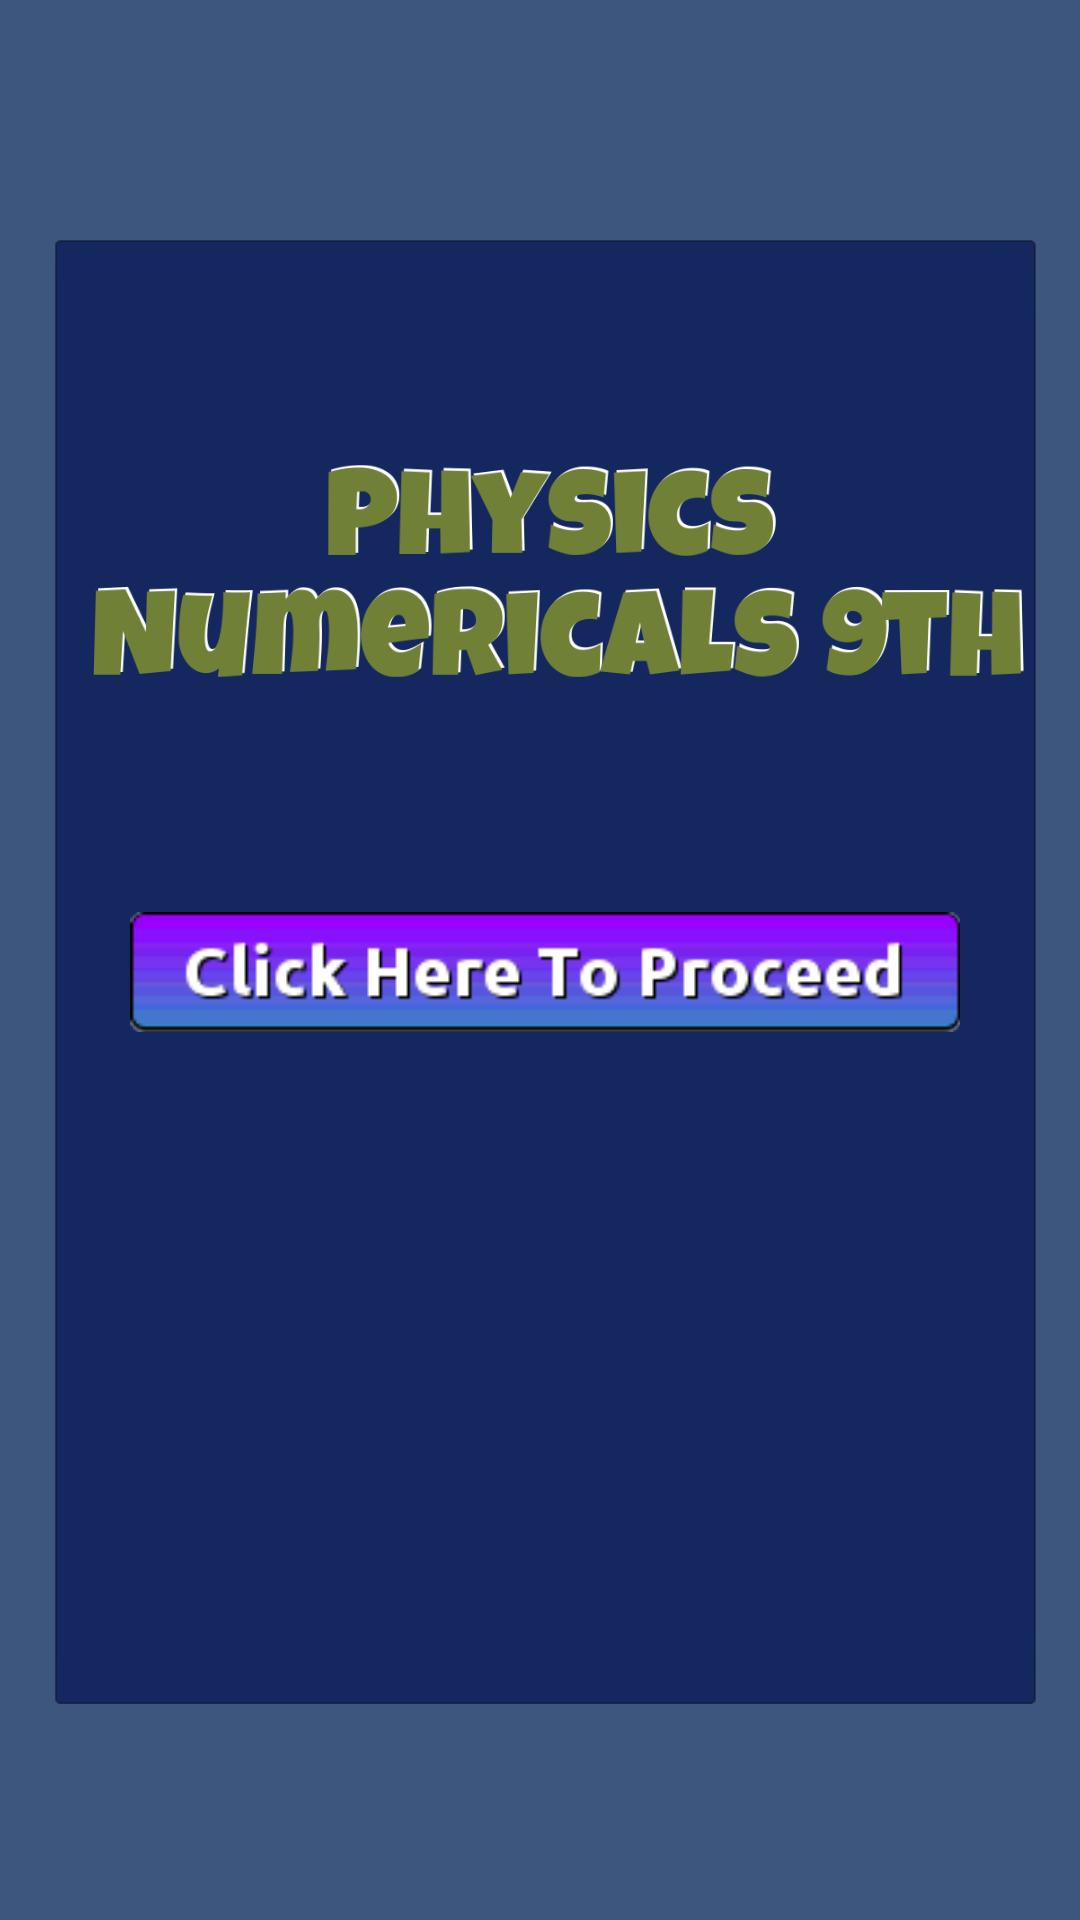 Physics Numericals And S/A 9th for Android - APK Download